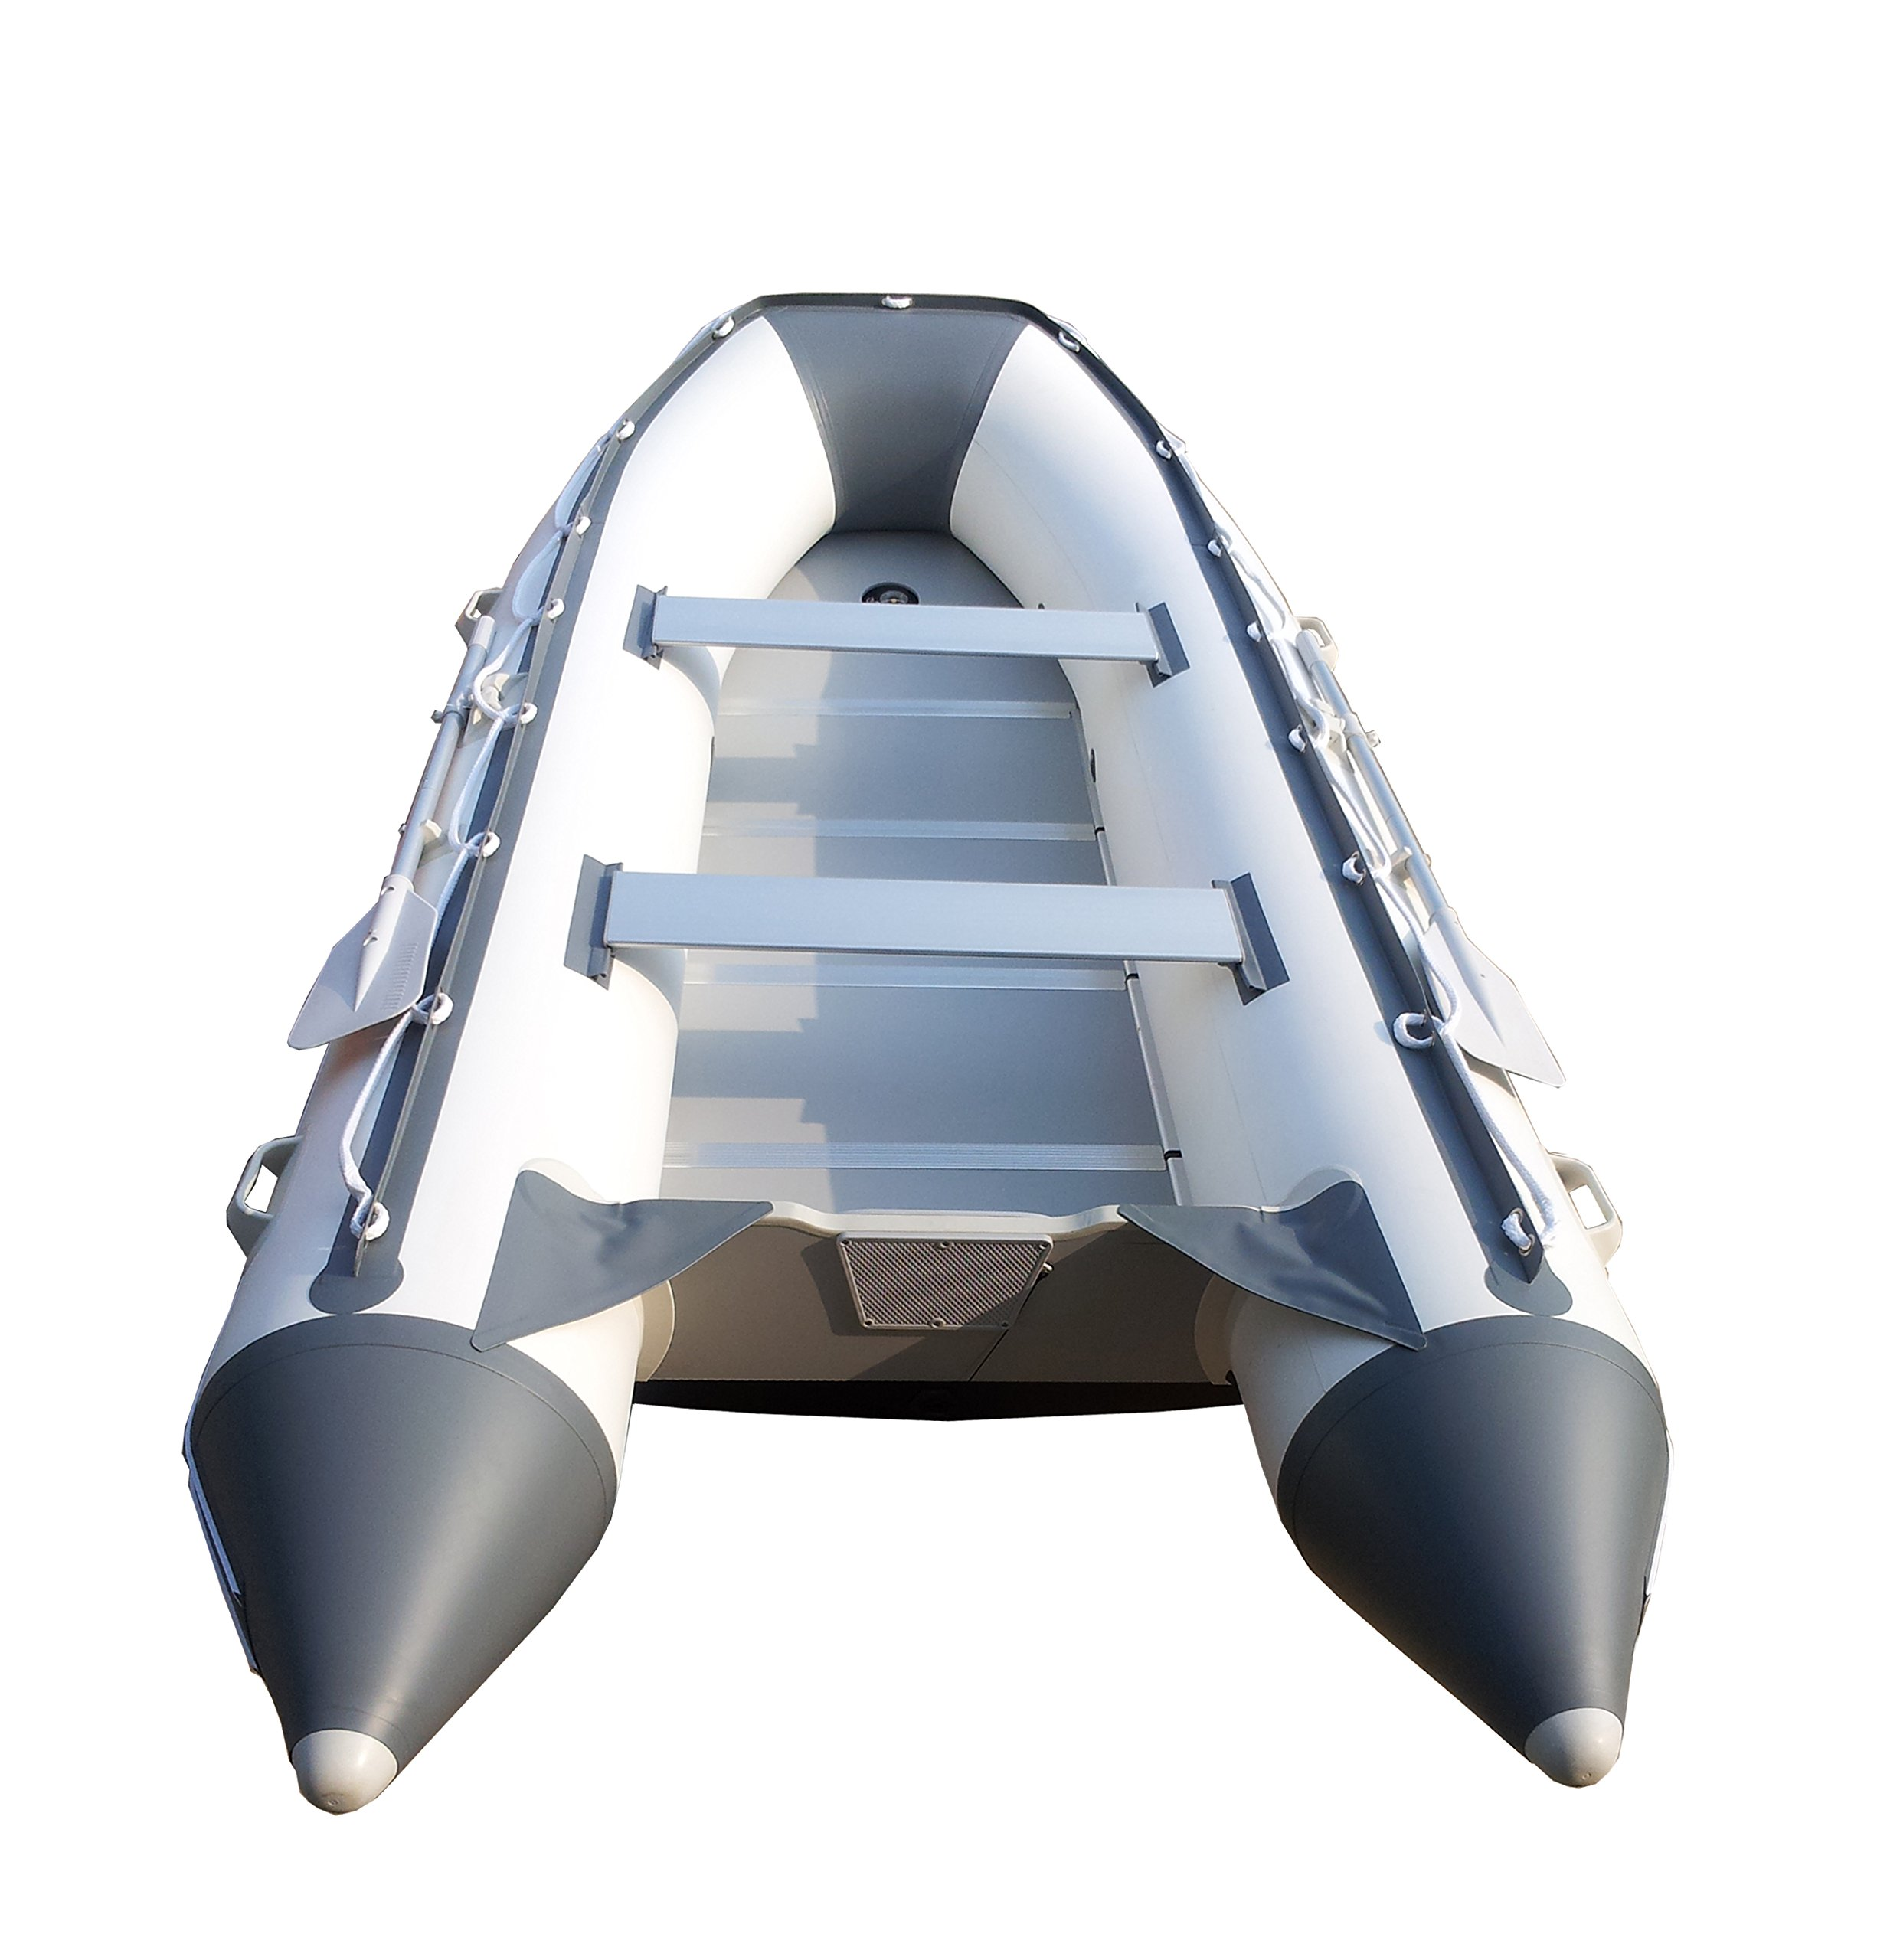 Newport Vessels Catalina Inflatable Sport Tender Dinghy Boat